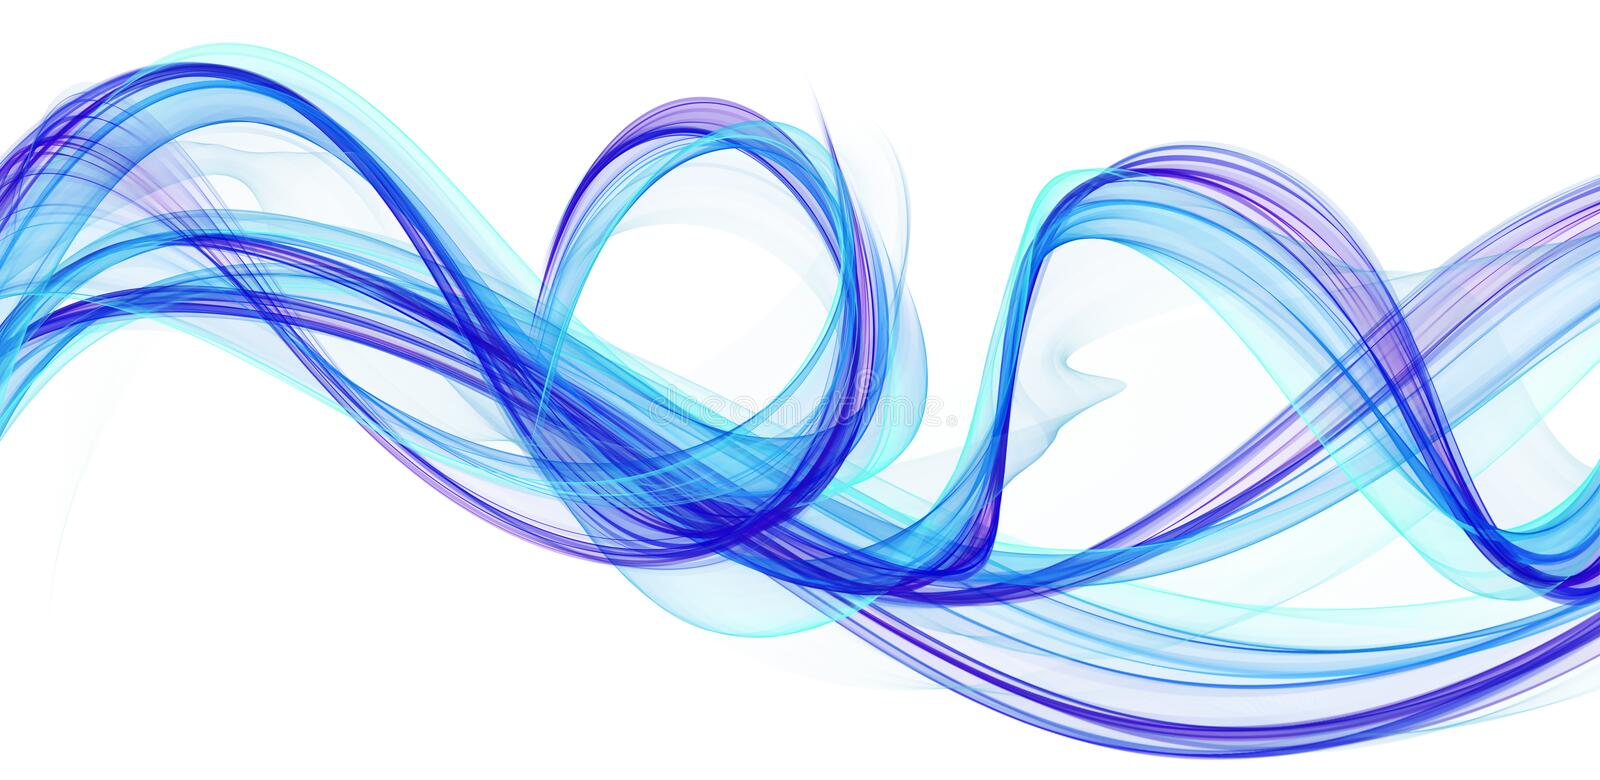 Blue and purple flames vector illustration